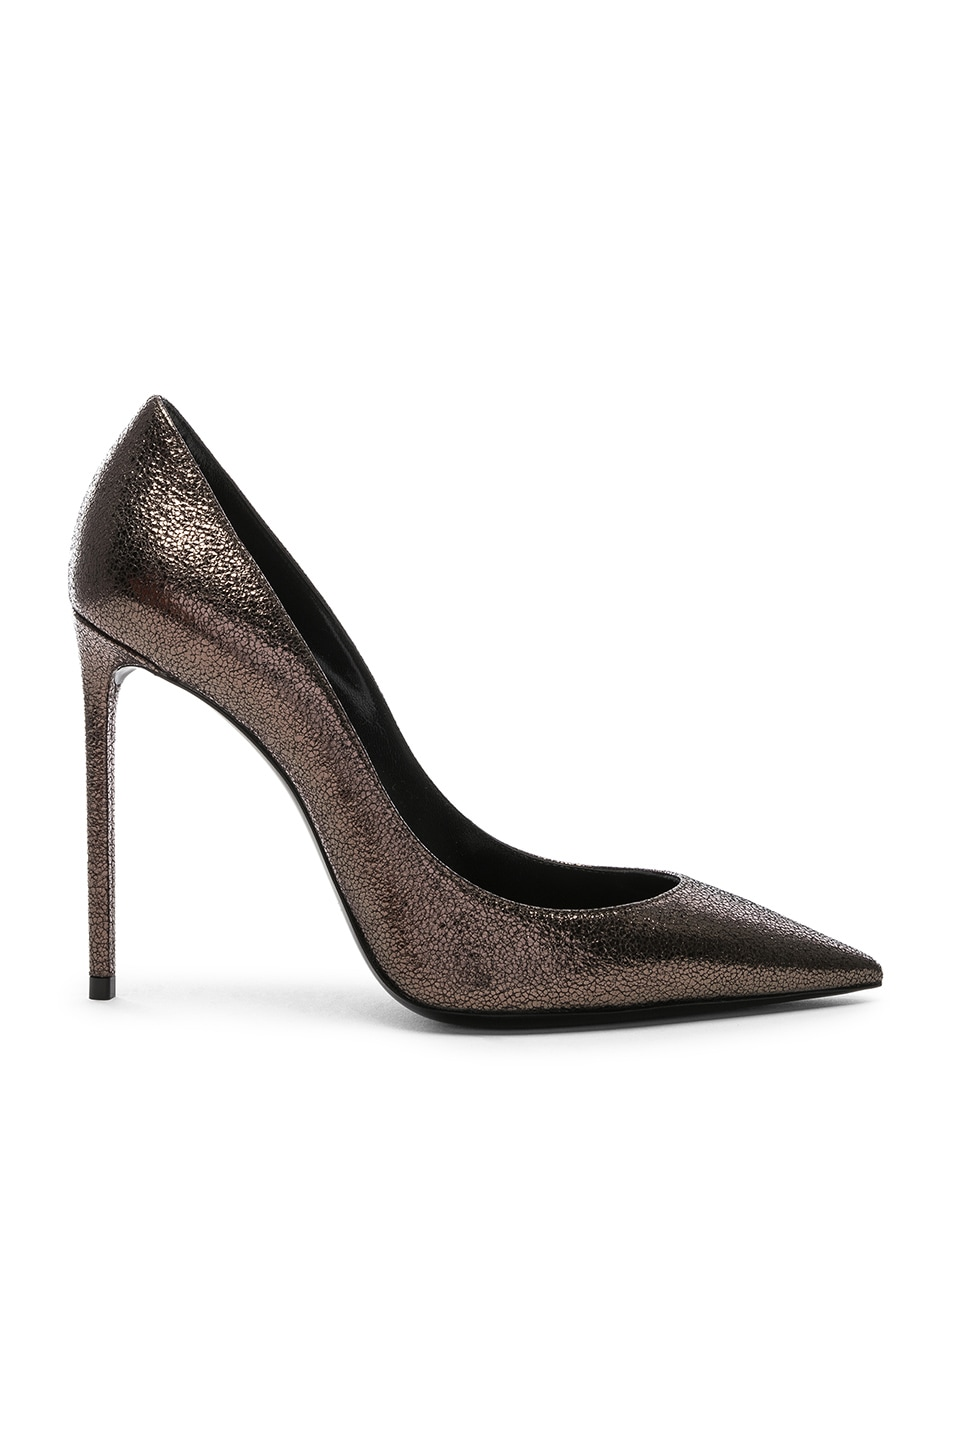 Image 1 of Saint Laurent Zoe Pumps in Gunmetal